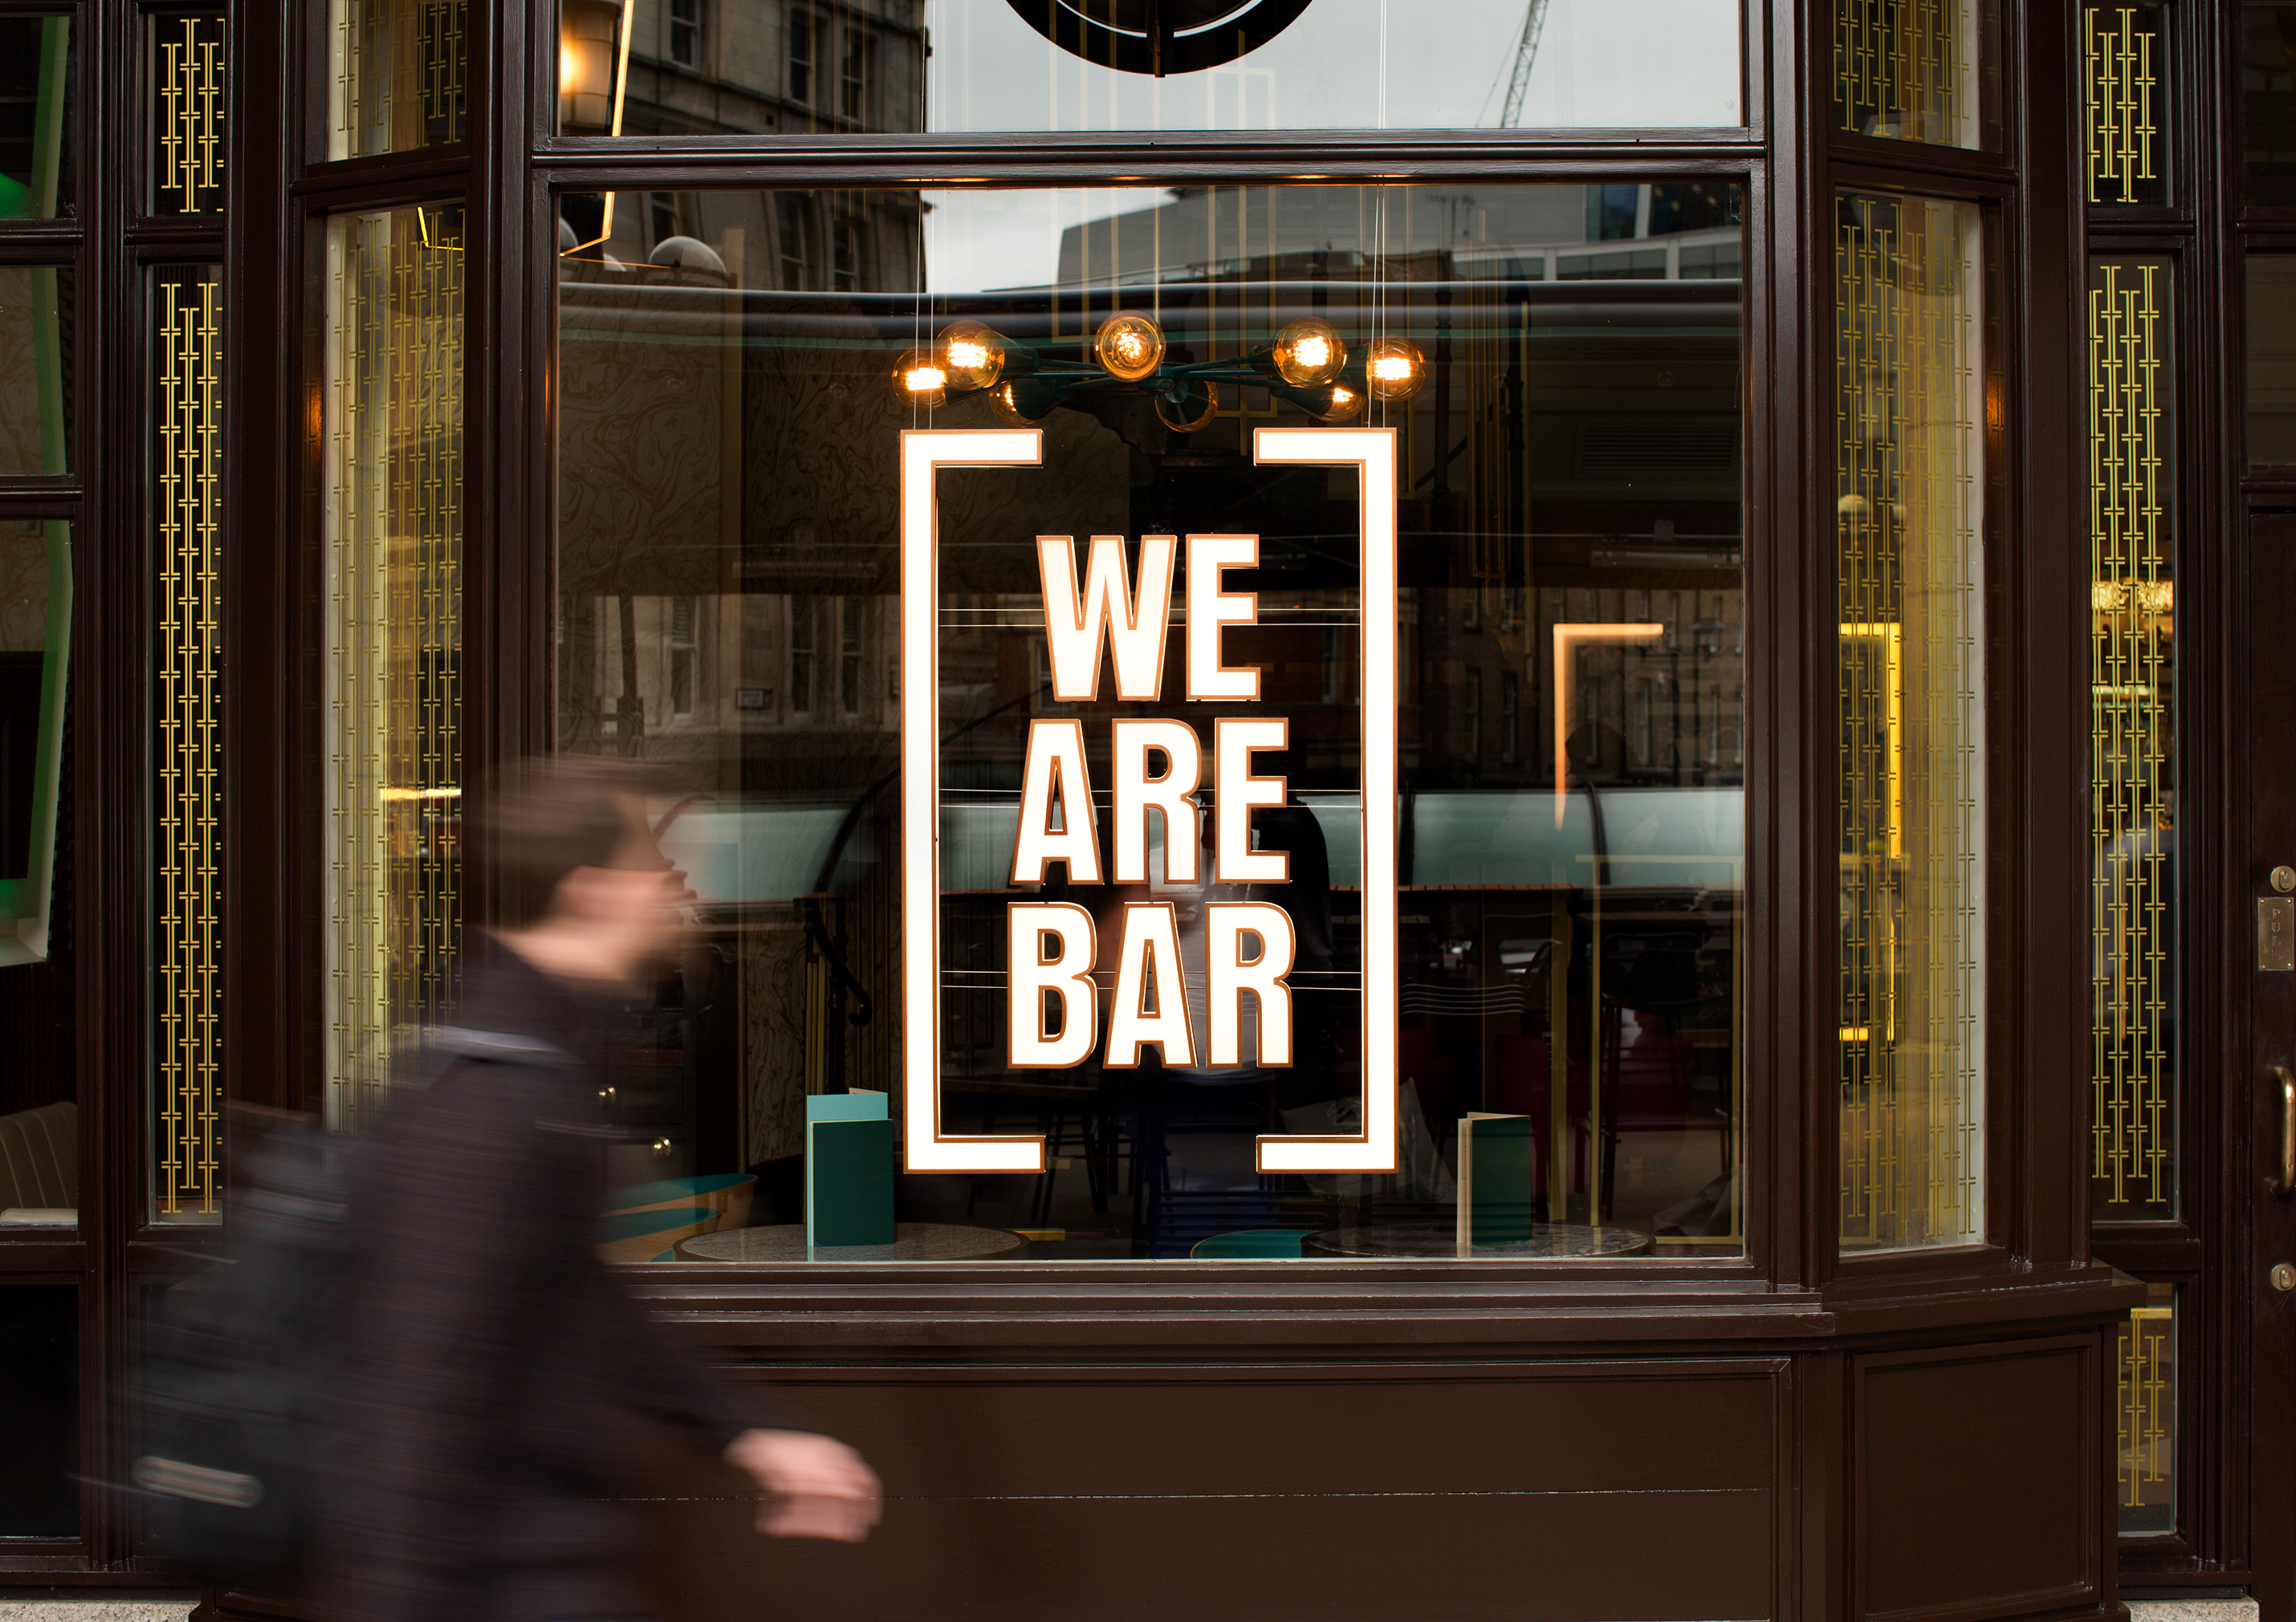 3-we-are-bar-logo-signage